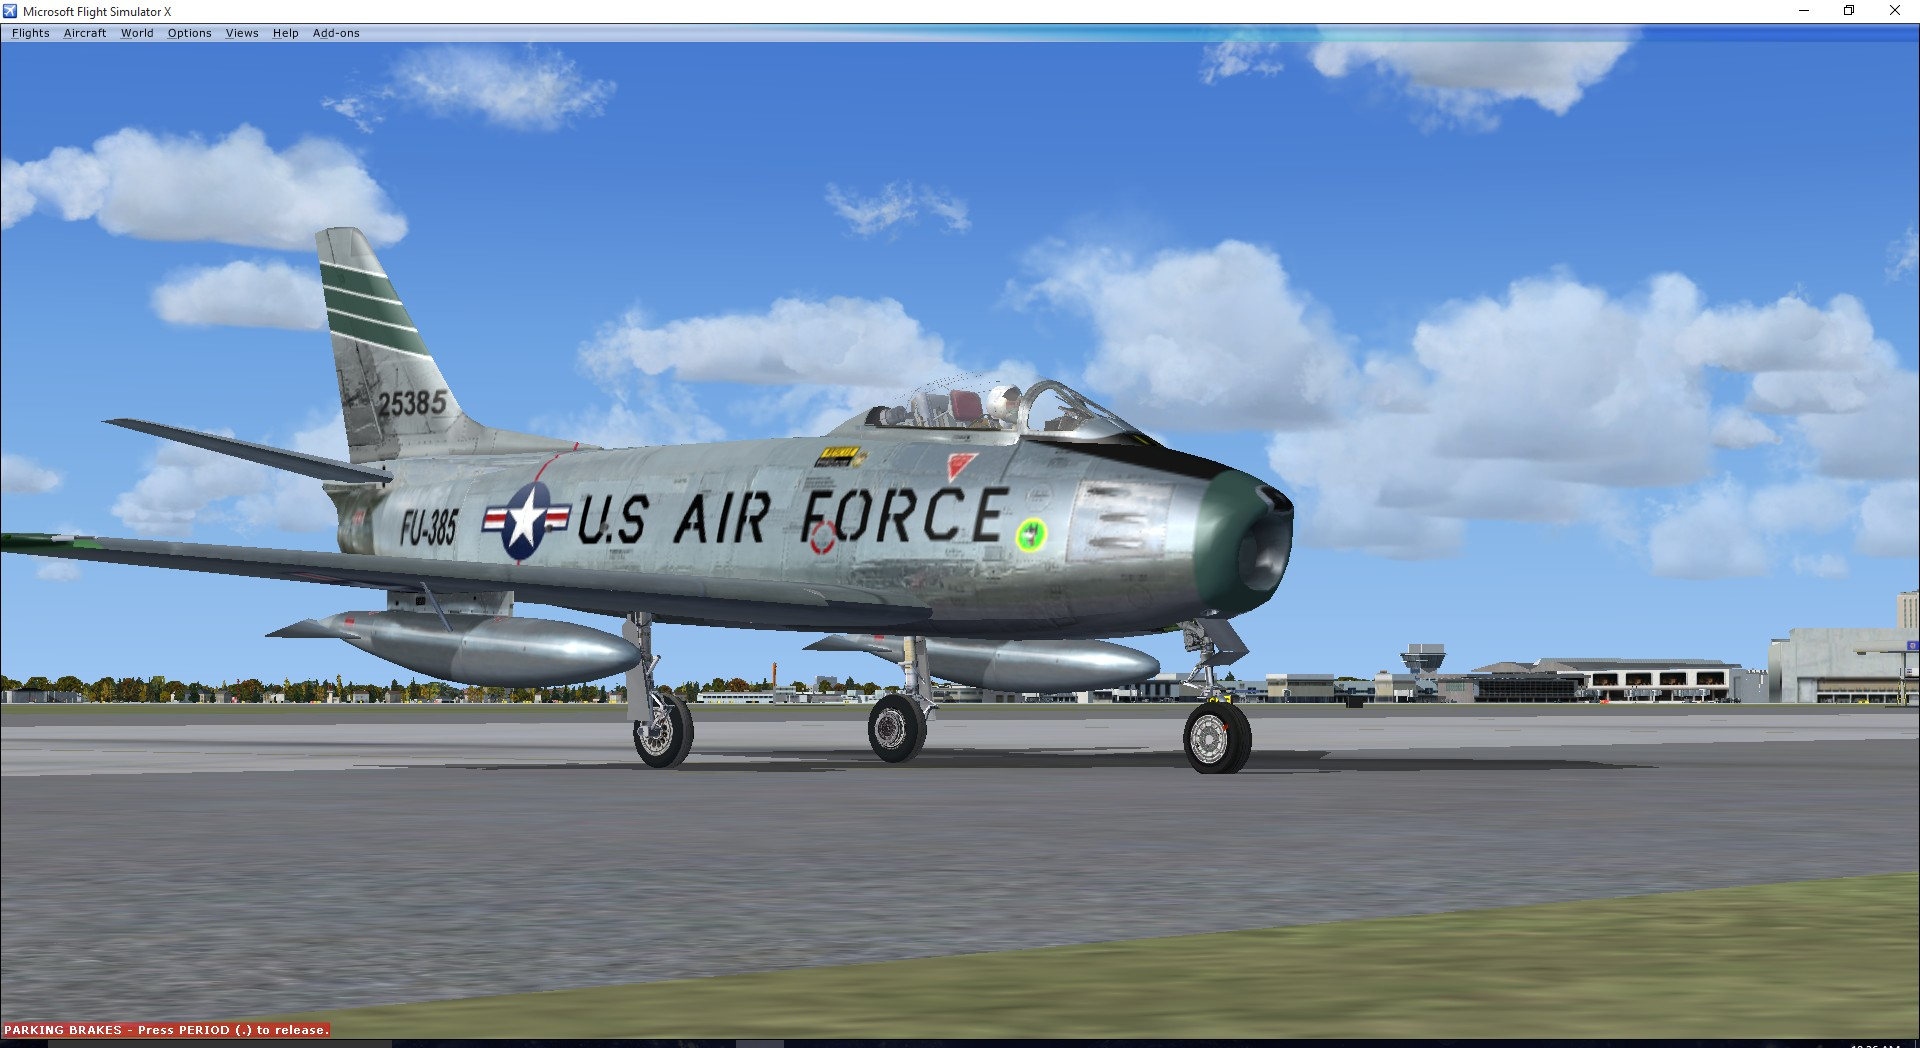 North-American-F-86F-Sabre-FU-385-USAF-wolfhounds-SectionF8-3